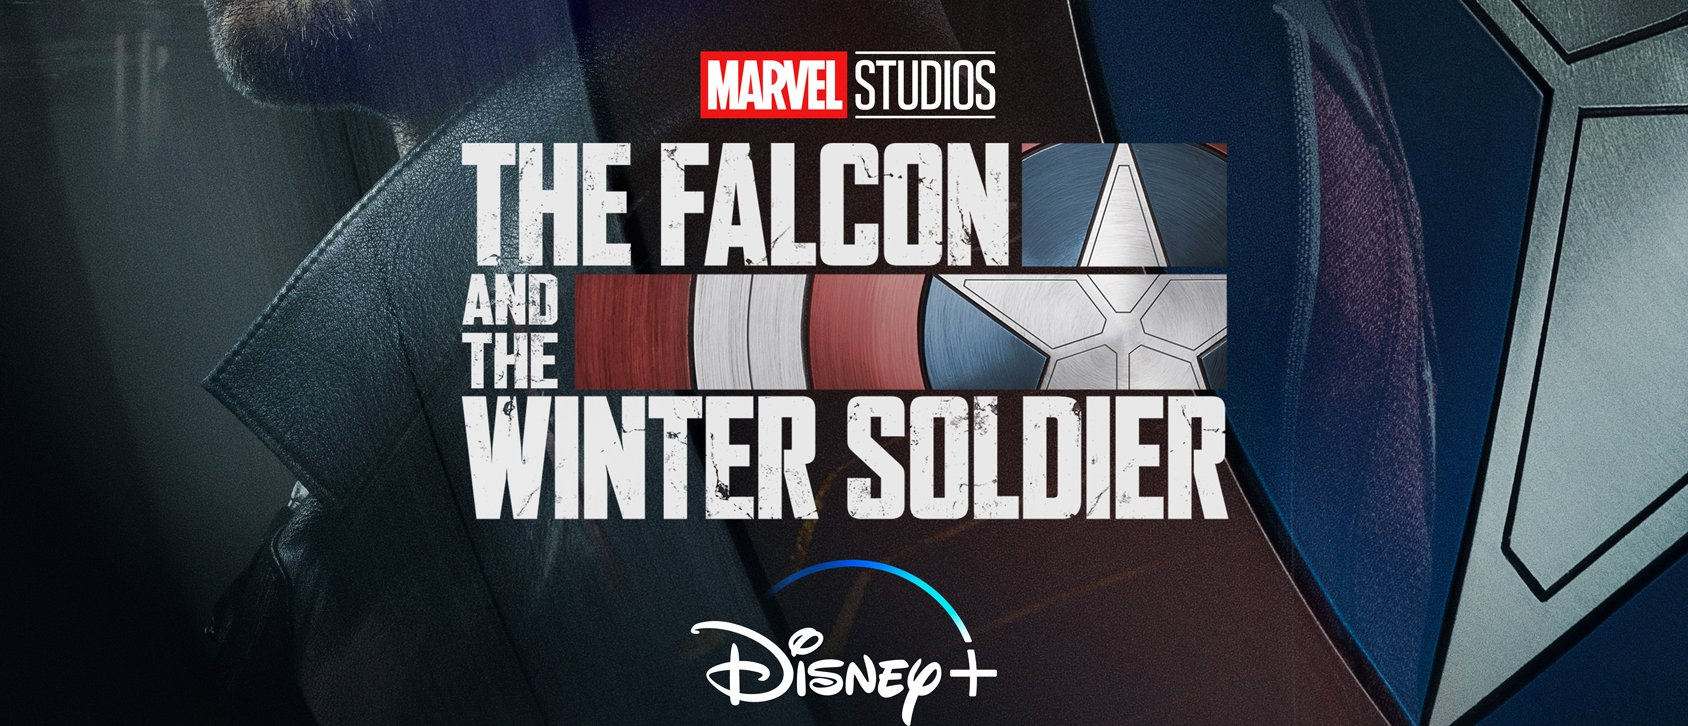 The Falcon and the Winter Soldier: See The Longer Trailer